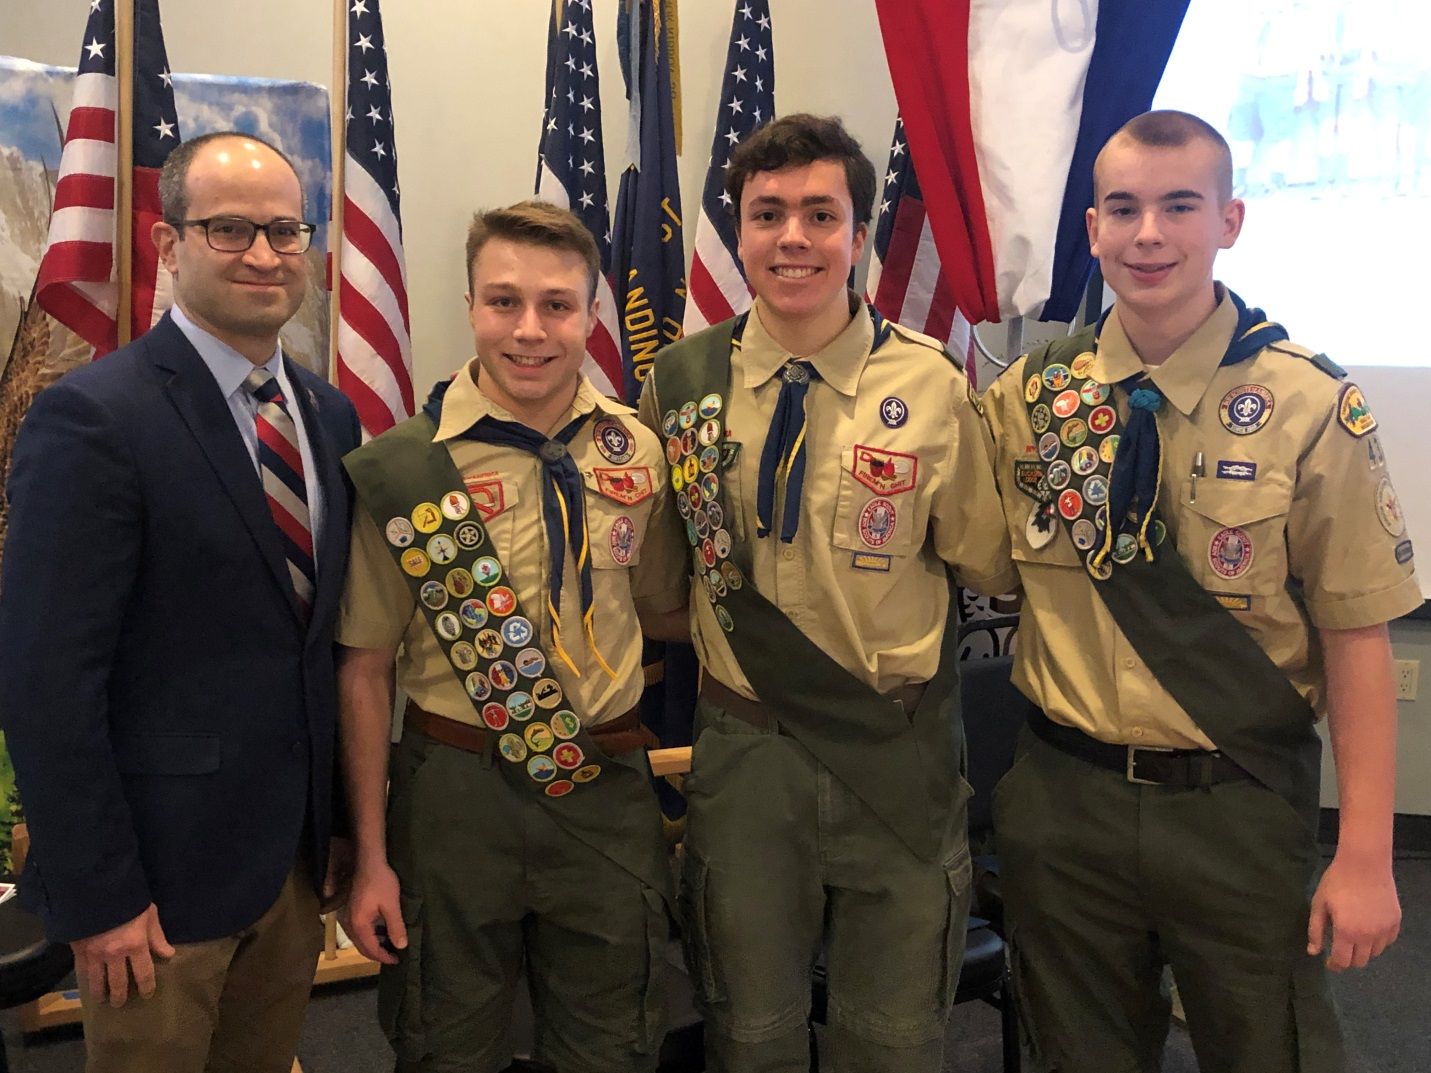 Assemblyman Ed Ra (R-Franklin Square) with Eagle Scouts Alexander Leonard DeMeo, Luke Martin and John Jake Sasso.